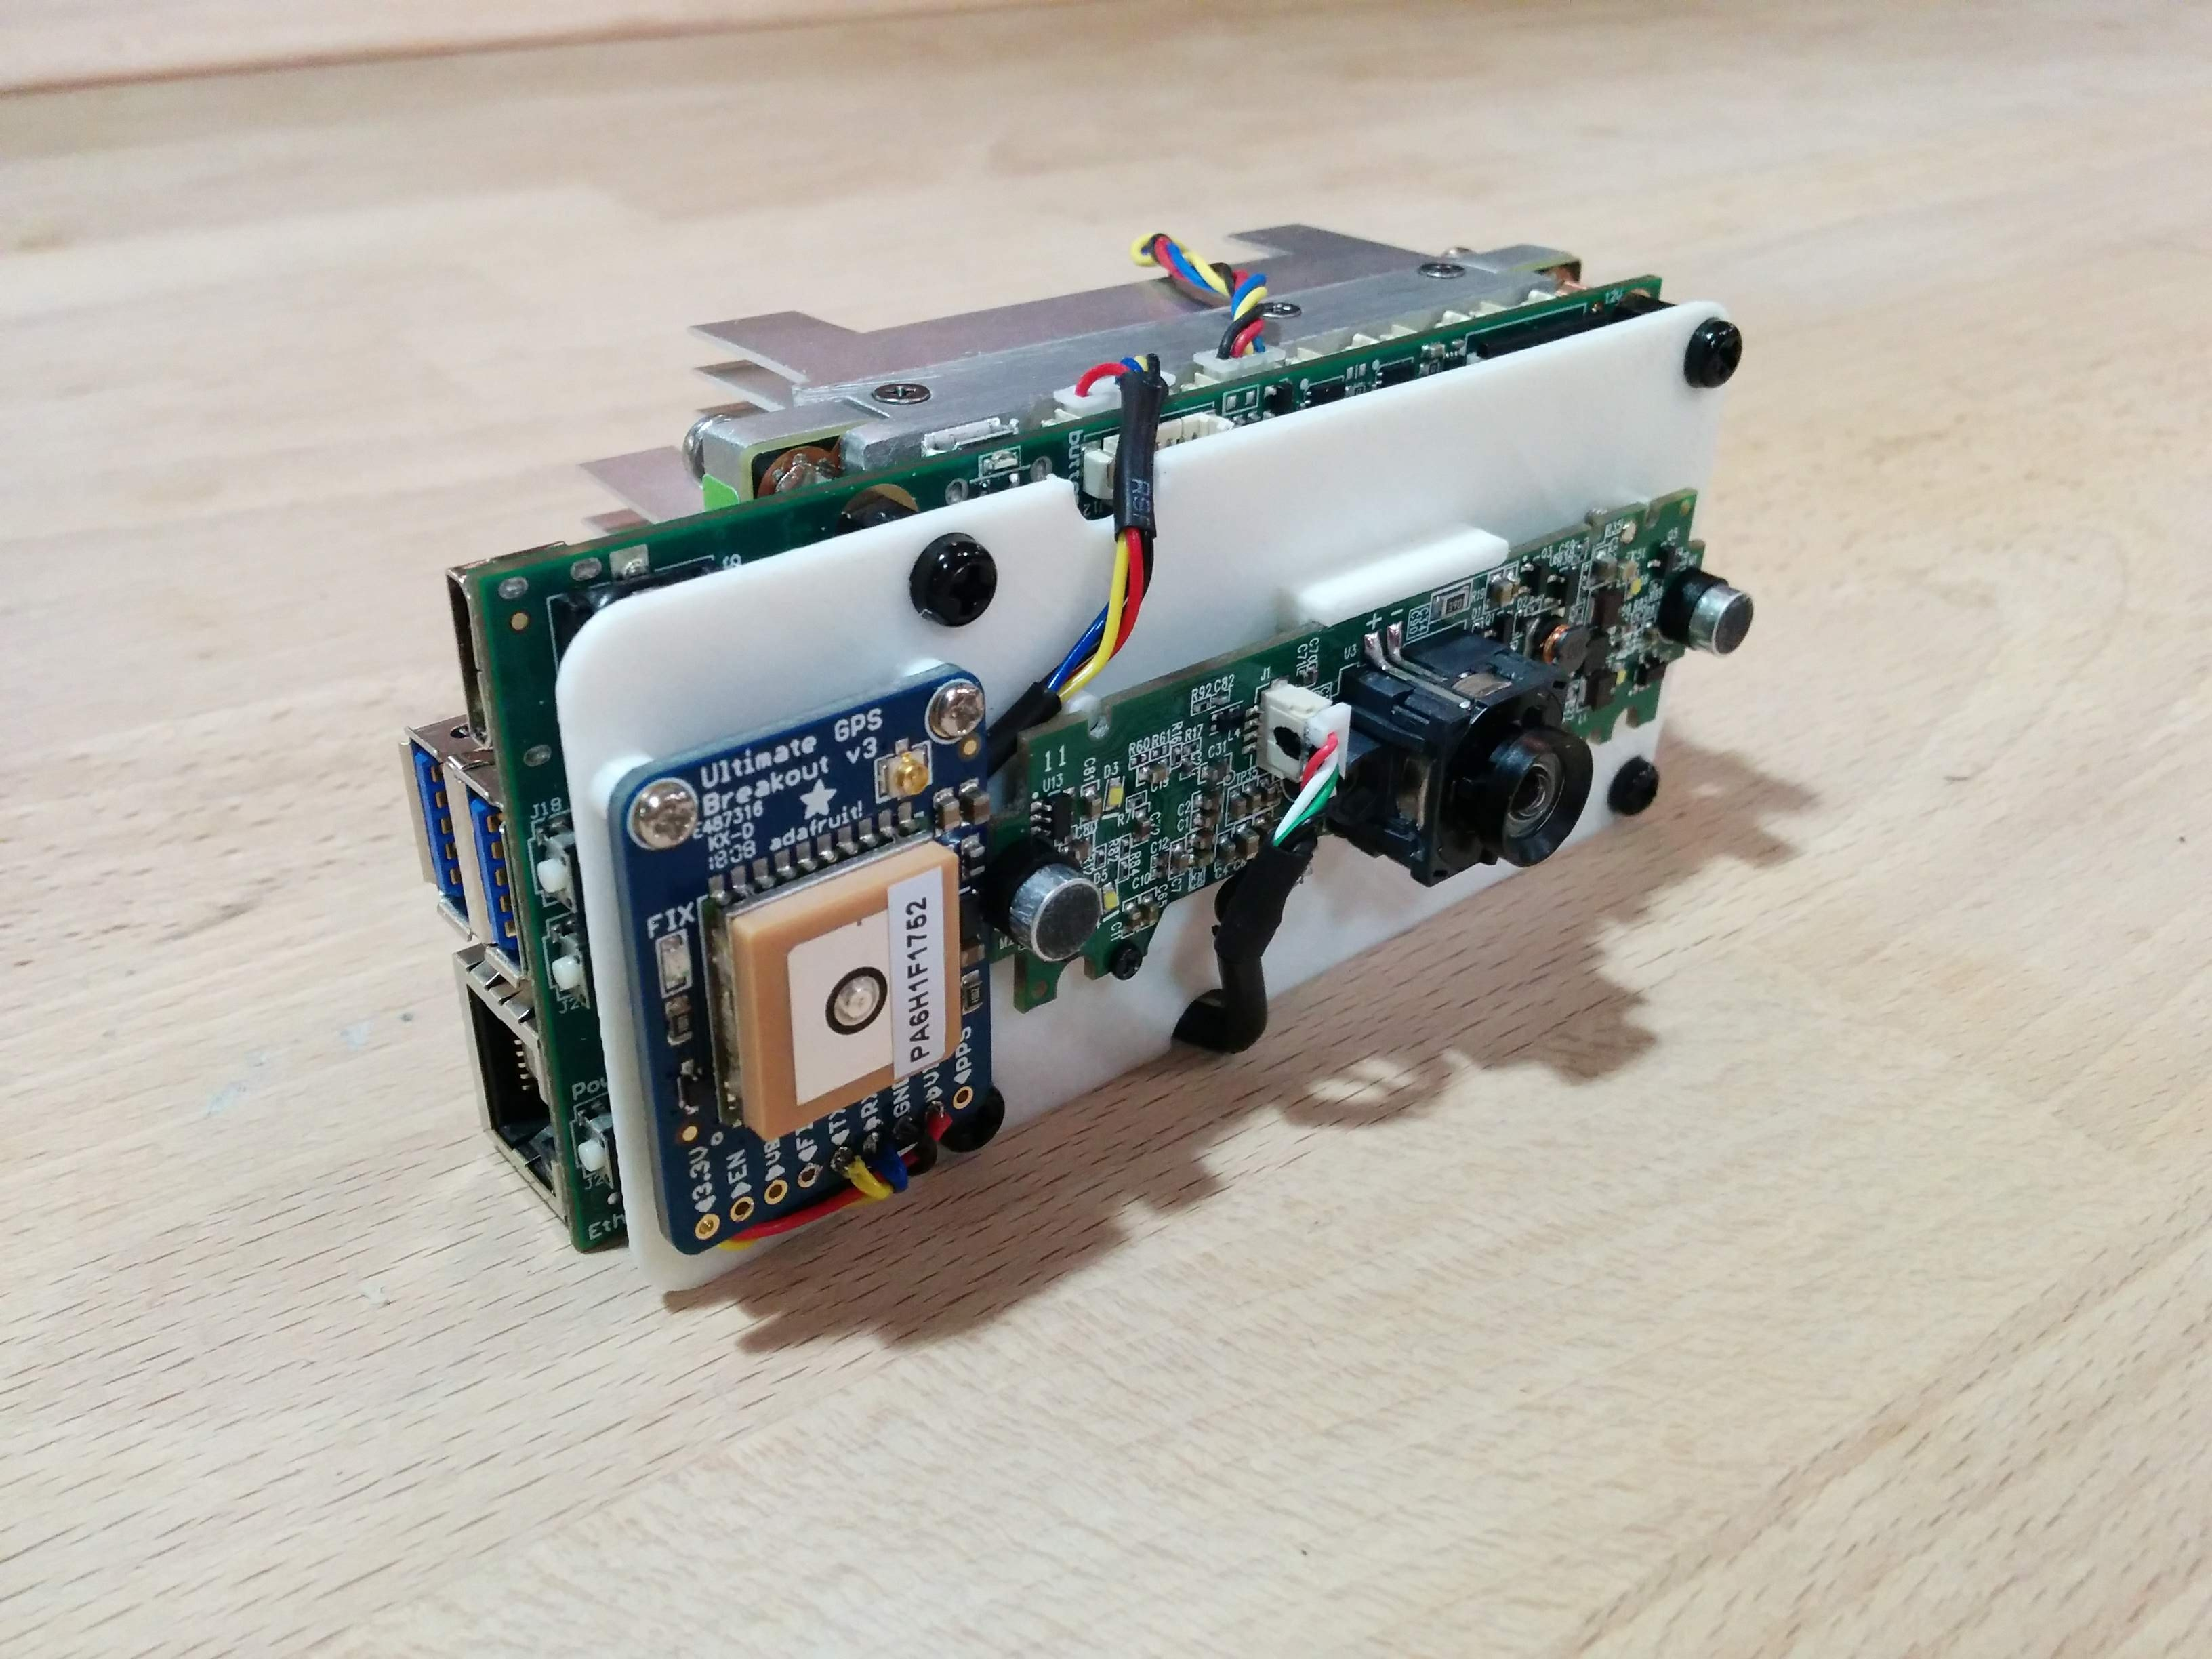 First Trial Printing of the Camera Device with Jetson TX2